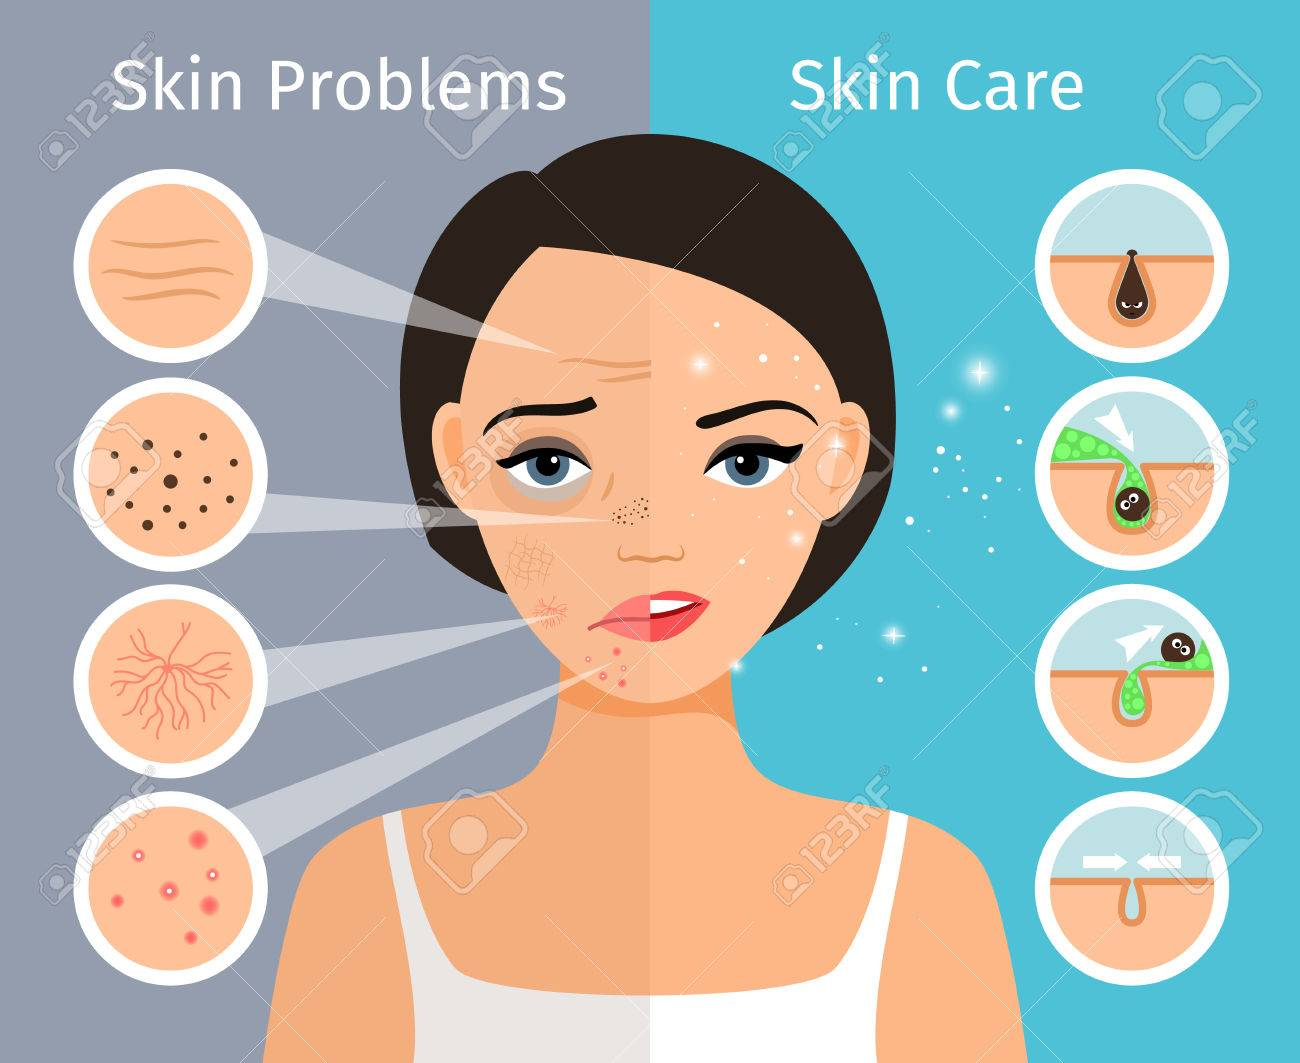 Home facial skin clean and oily, care and cosmetology. Female head with beautiful skin problems solution vector illustration - 76594384